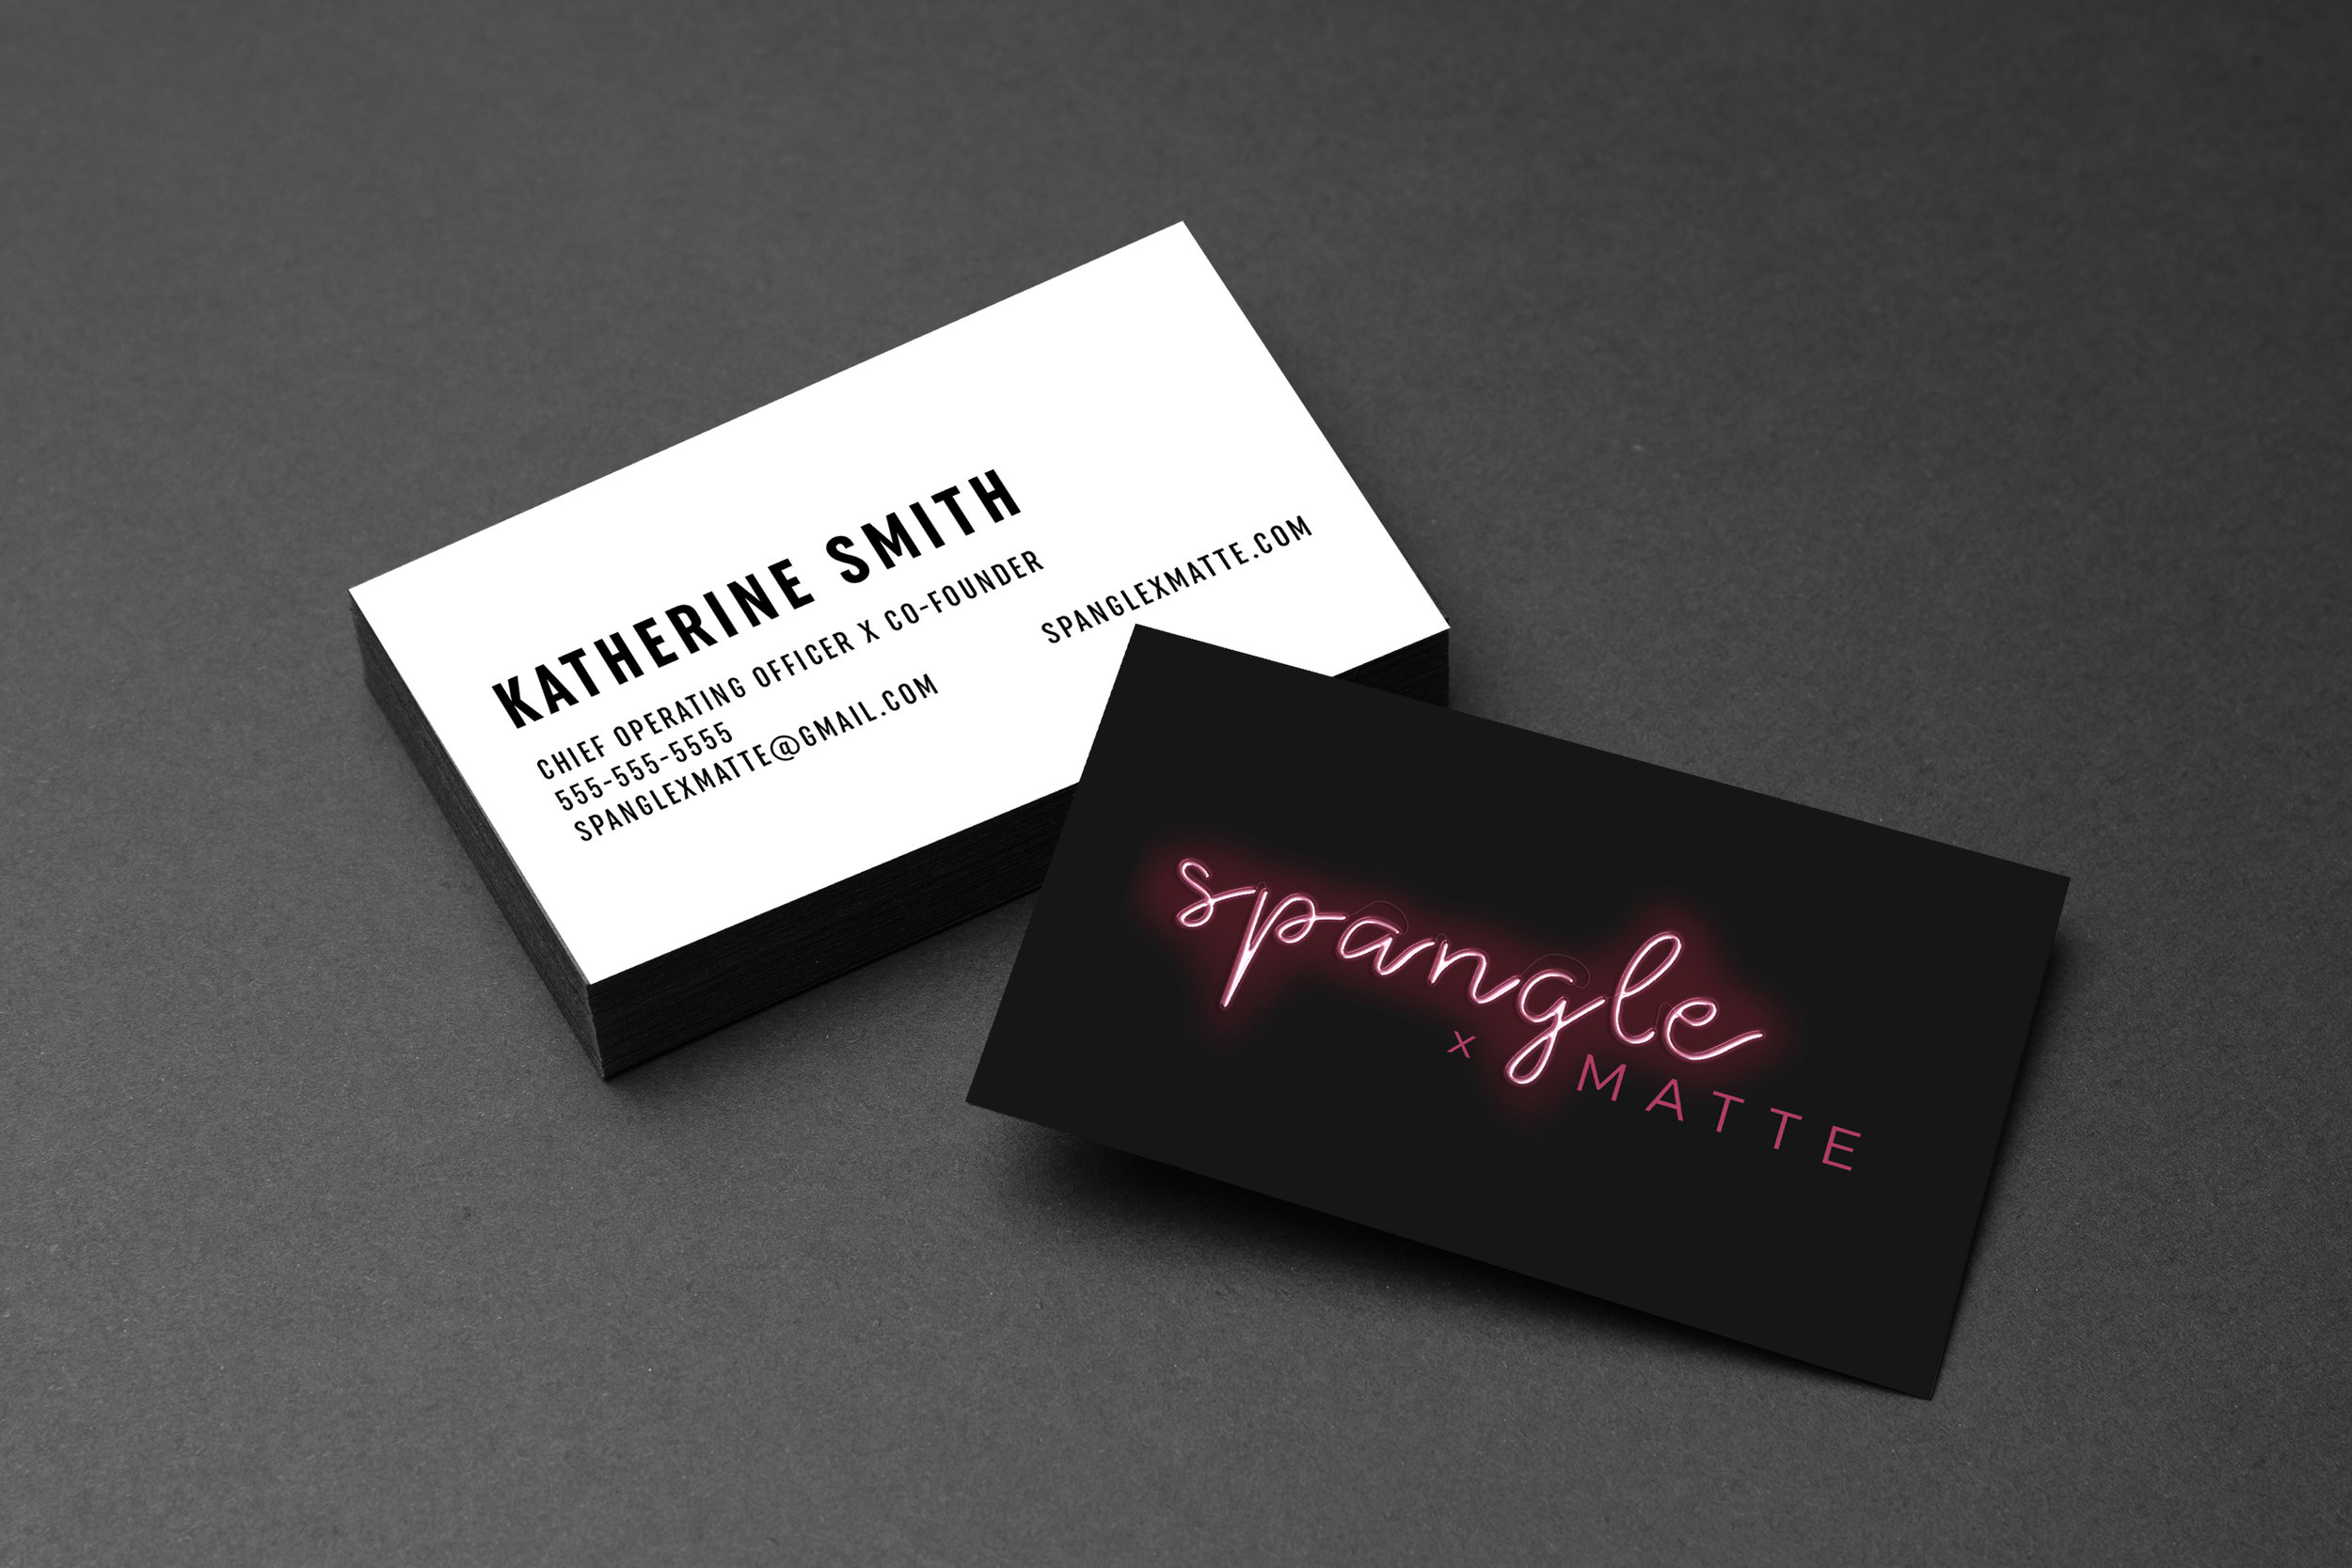 Spangle x Matte_BusinessCard_Mock.jpg